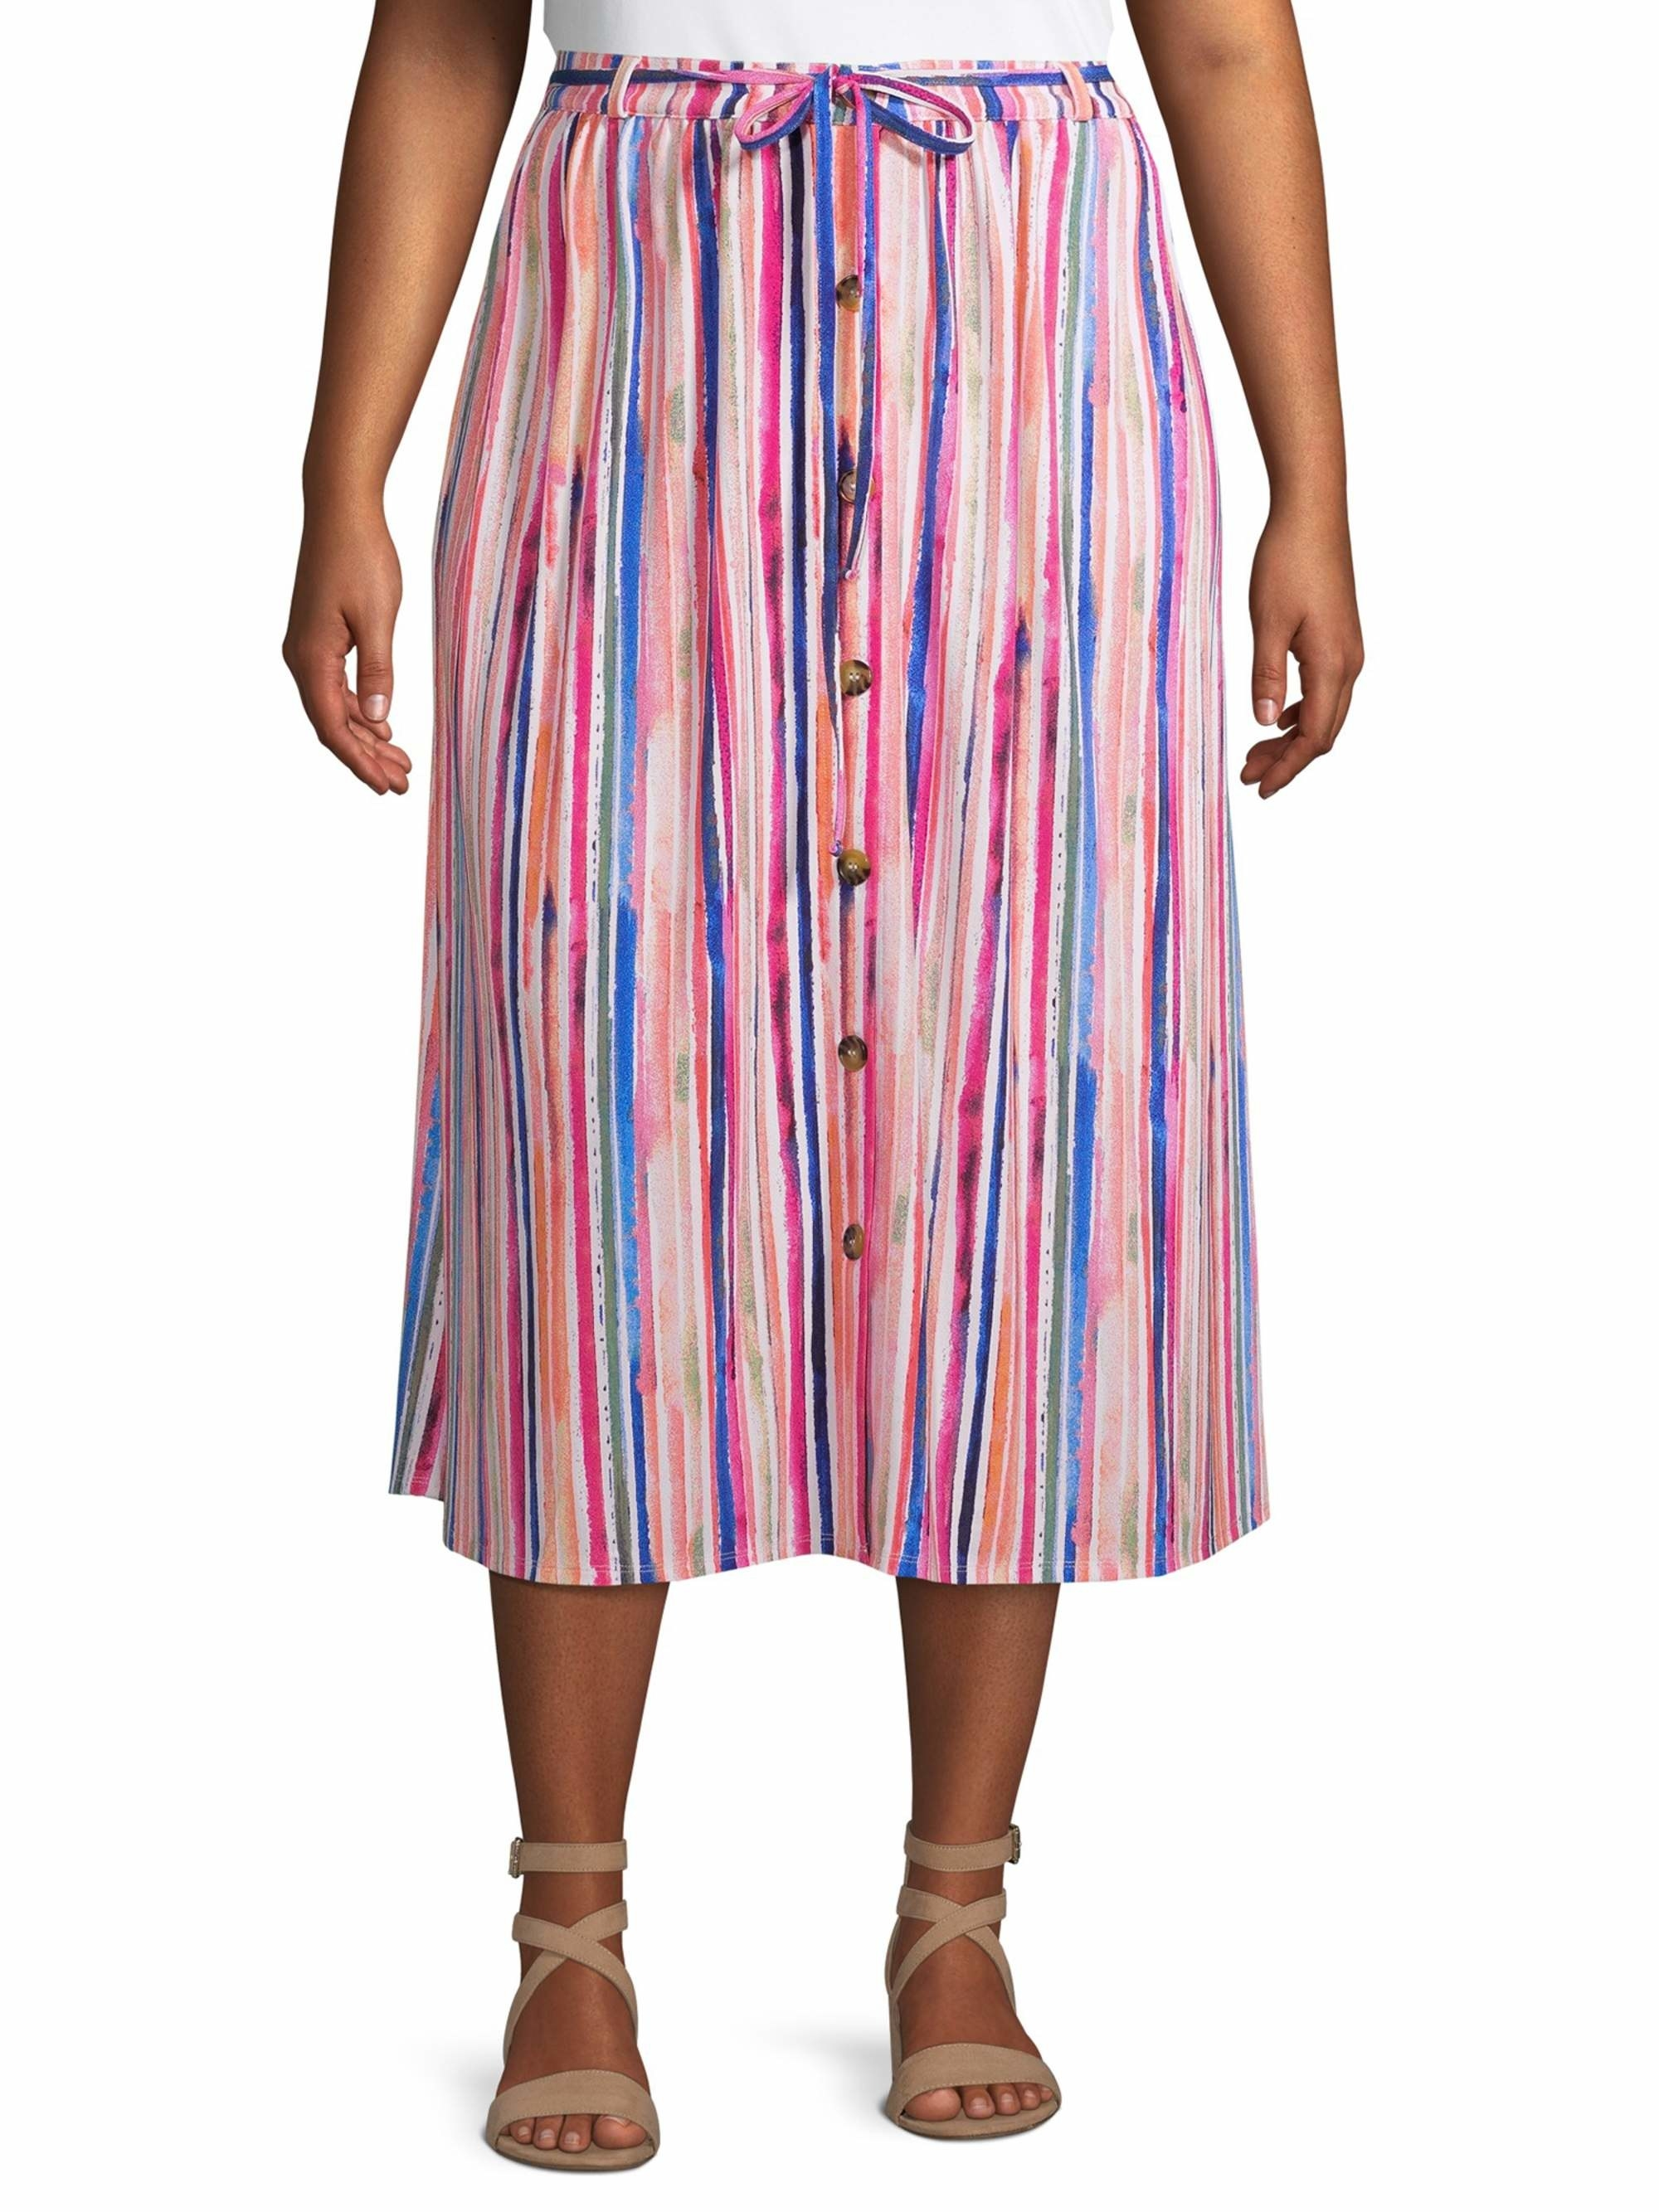 the skirt in an array of bright colors and vertical stripes